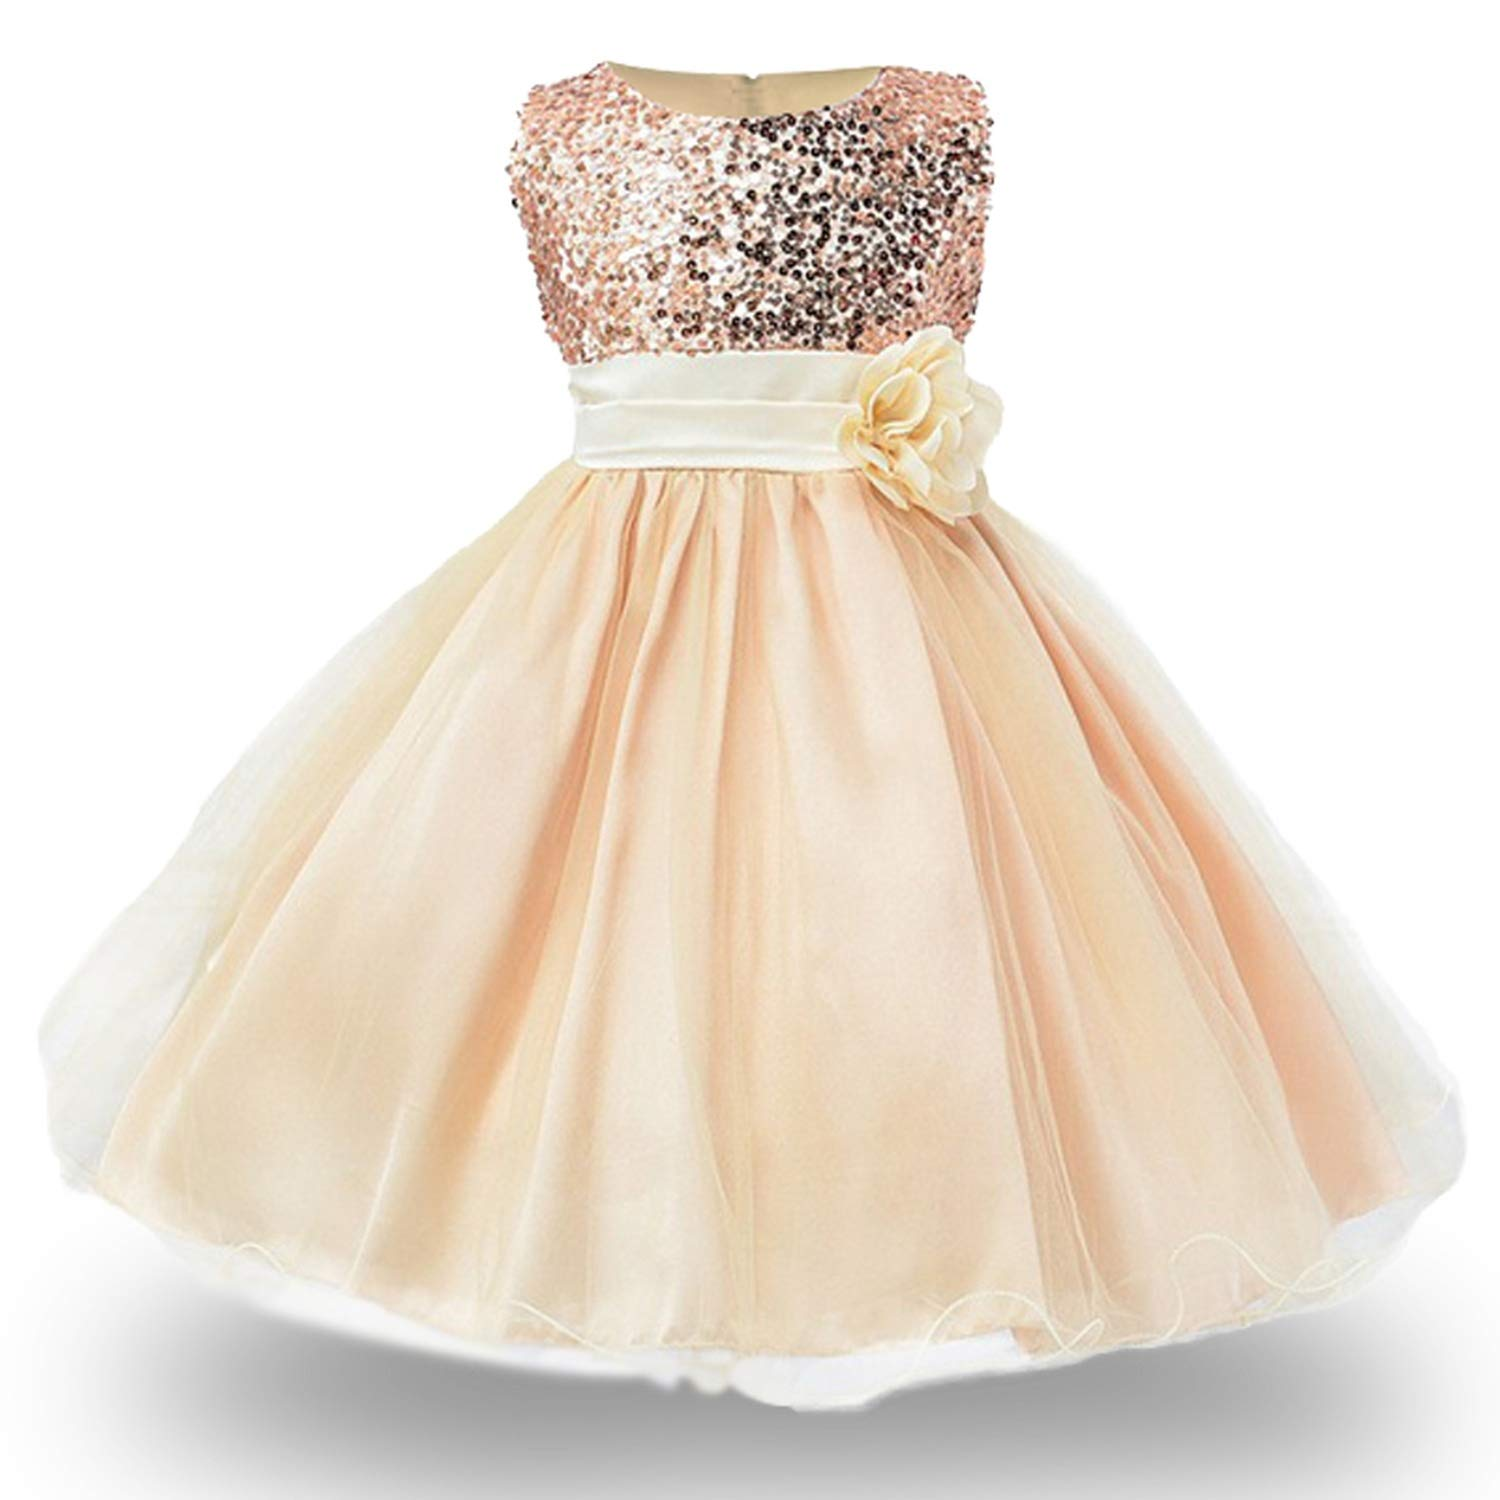 2T 1-14 Yrs Teenage Girls Dress Wedding Party Princess Christmas Dress for Girl Party Kids Cotton Party Girls